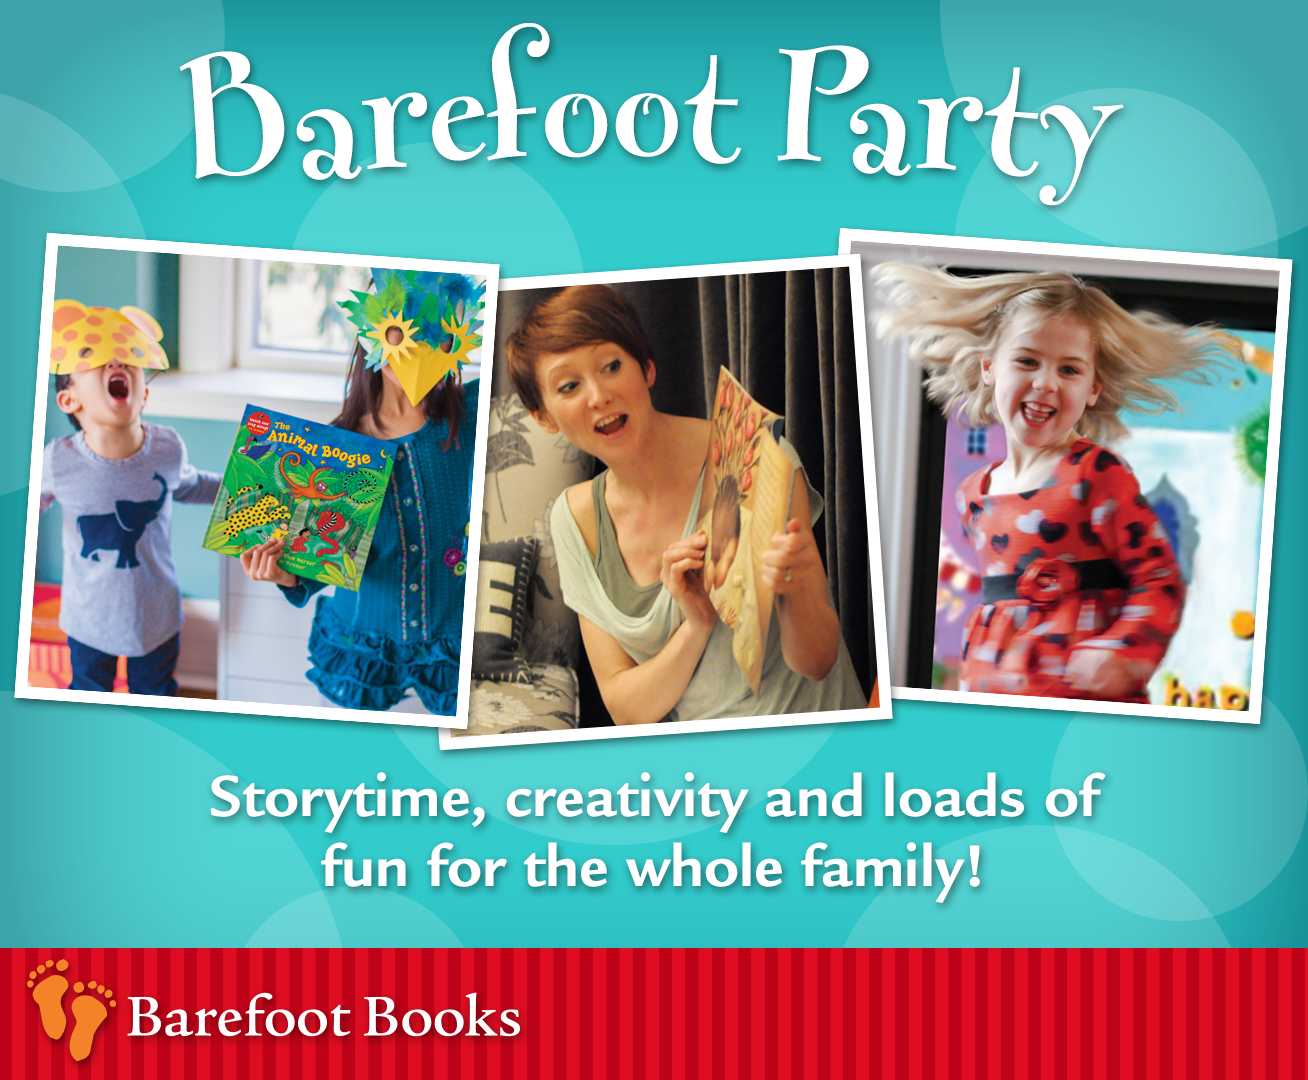 image for barefoot family party. | barefoot booksrachel (new